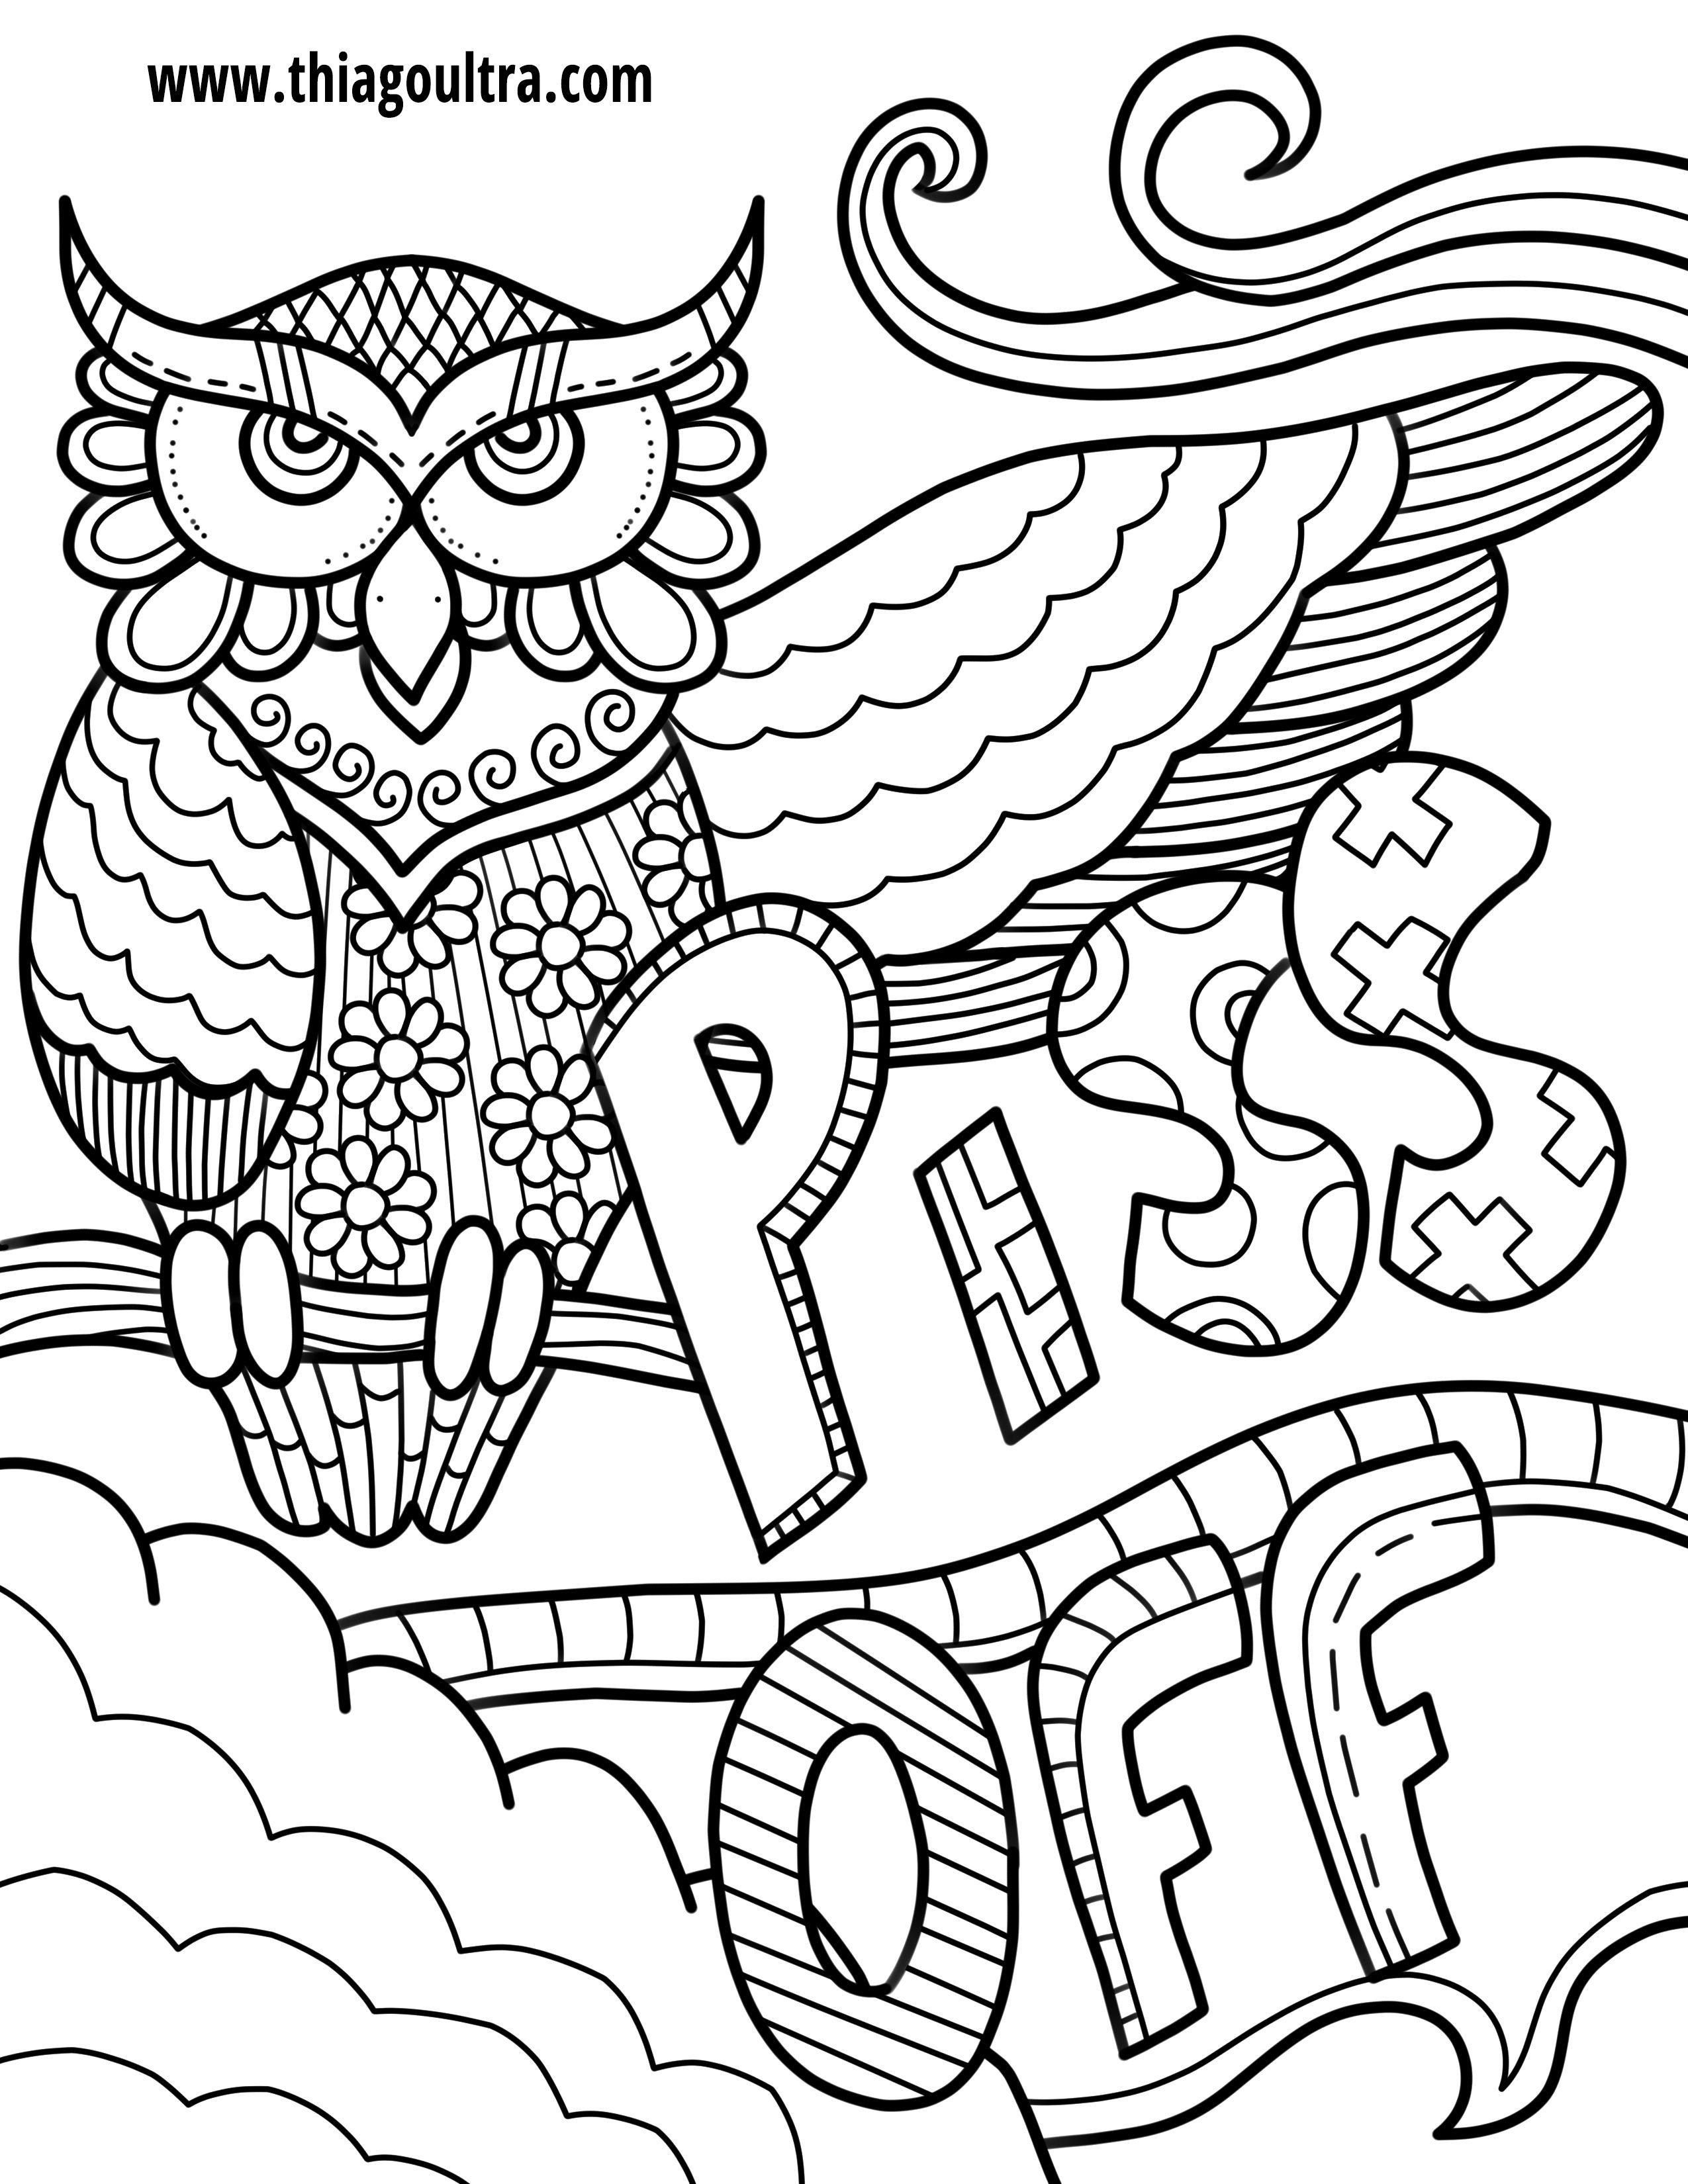 Challenge Free Printable Coloring Pages For Adults Only Swear Words - Swear Word Coloring Pages Printable Free